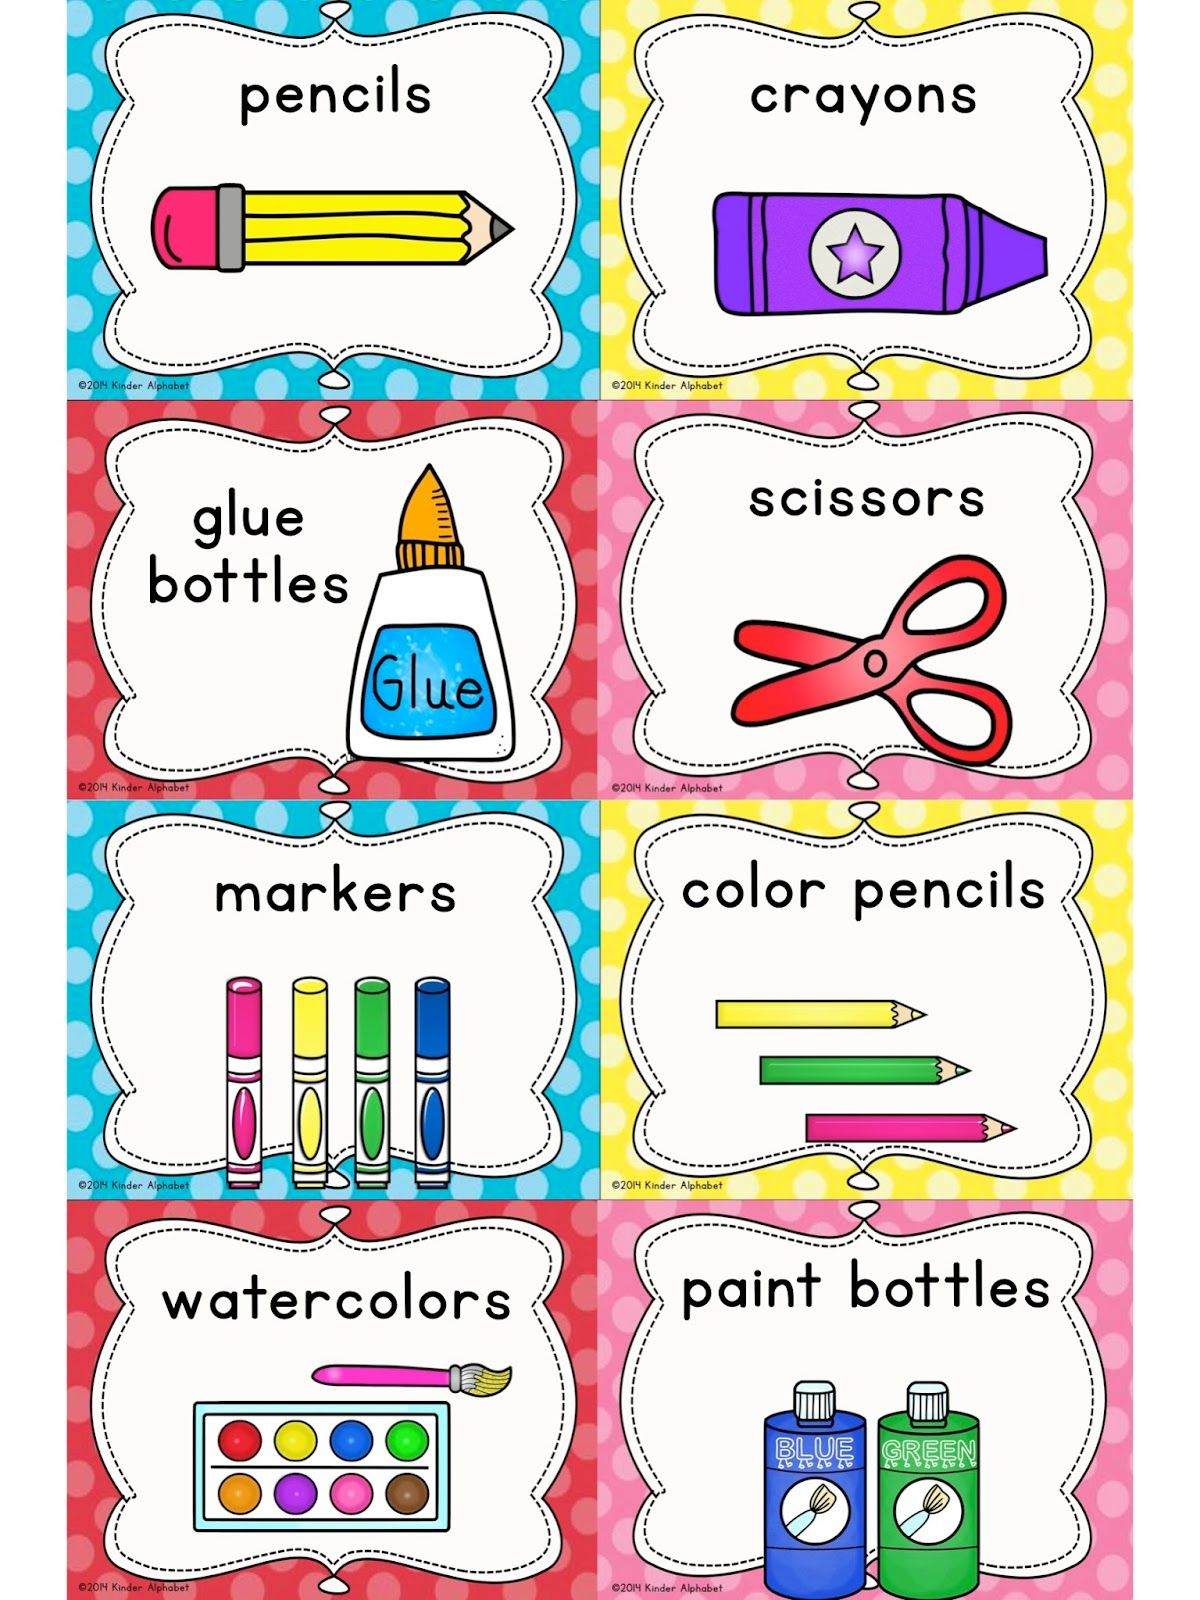 Kinder Alphabet: Cvcc Clip Art And Word Work Freebies | Classroom - Preschool Classroom Helper Labels Free Printable